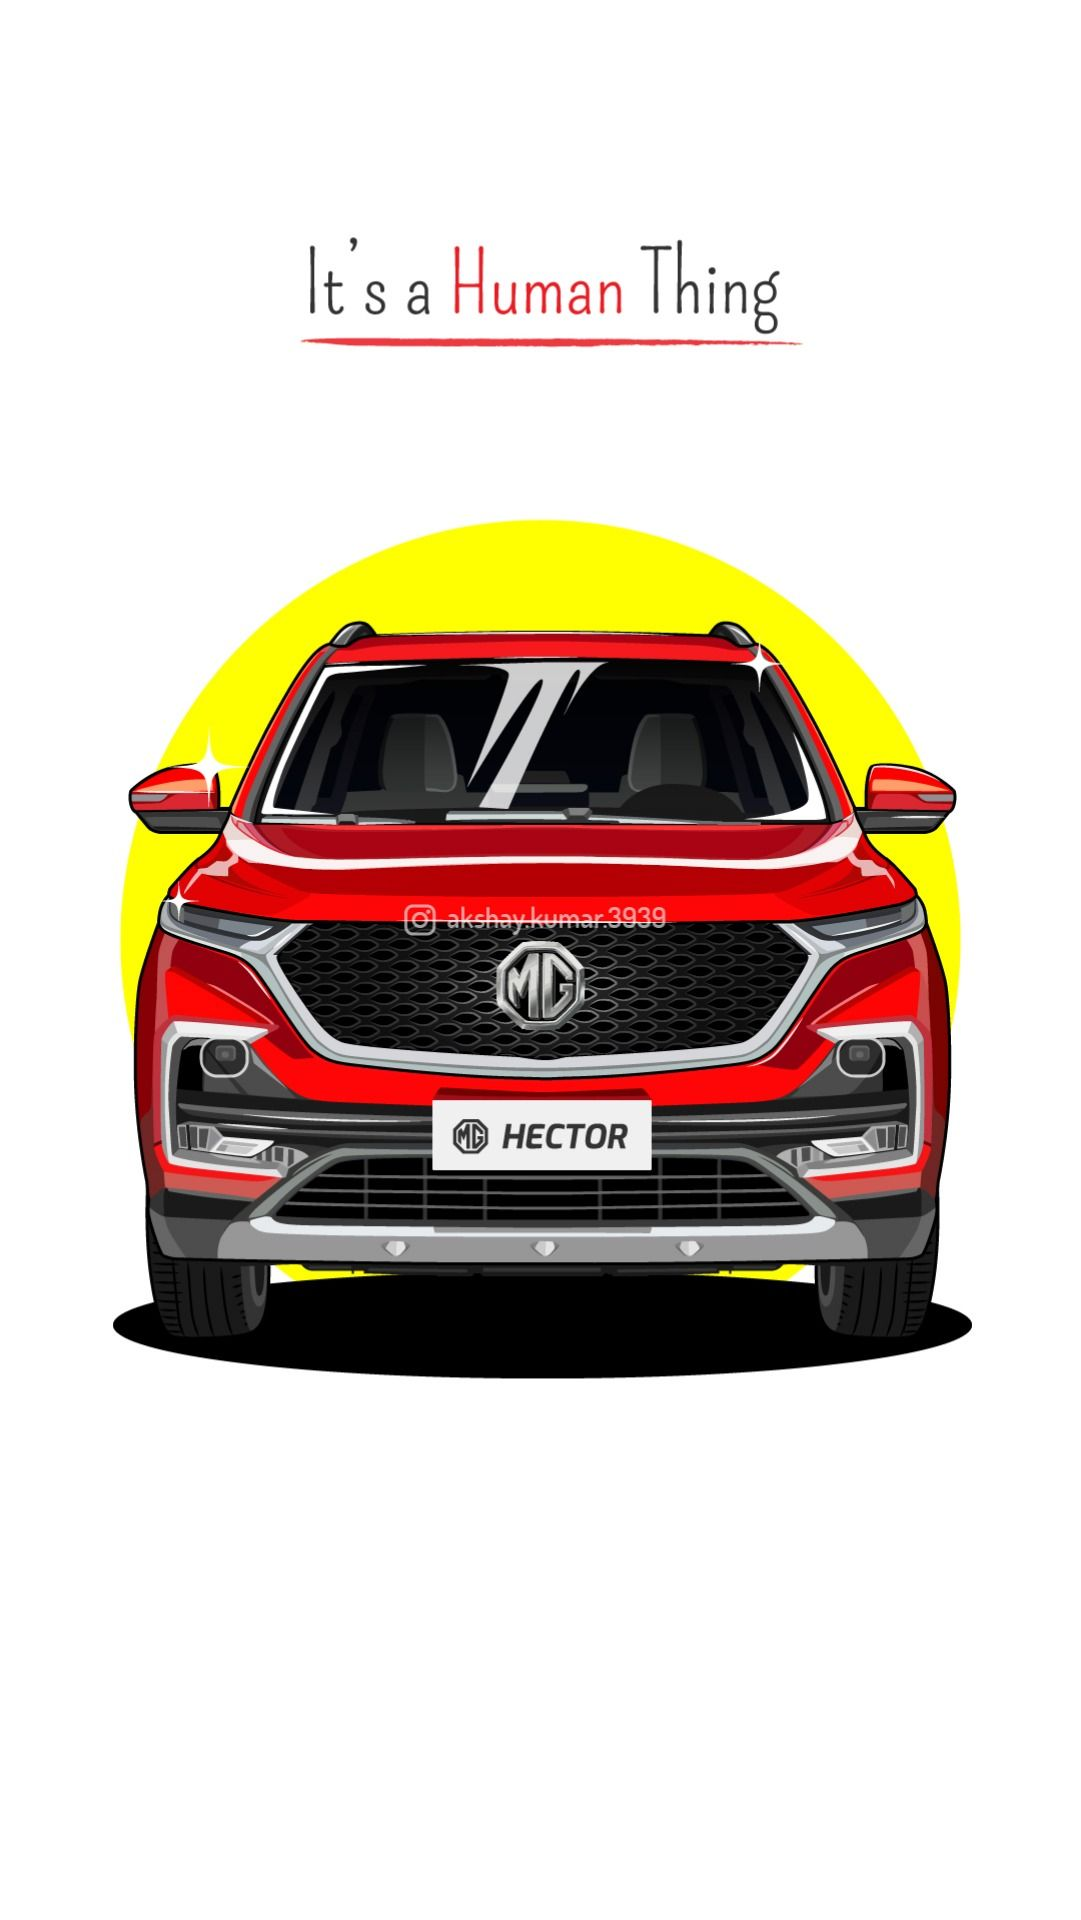 The Internet Connected Car Mg Hector For More Such Indian Cars Vector Artworks Follow My Instagram Page Akshay Kumar 3939 Hector Car Vector